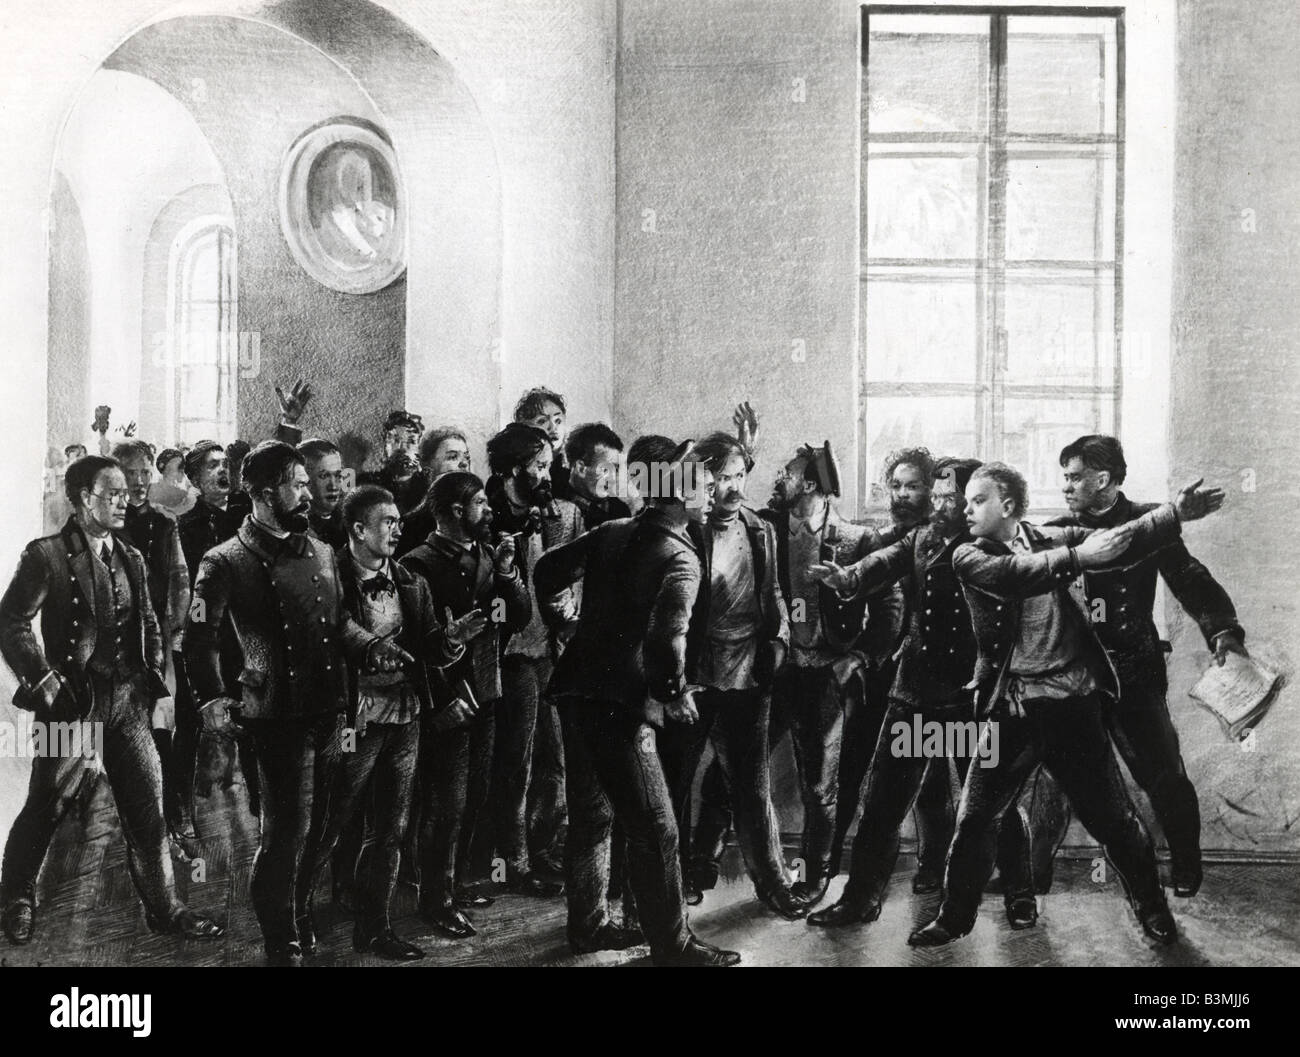 vladimir lenin essay russian drawing stock photos russian drawing  russian drawing stock photos russian drawing stock images alamy vladimir lenin leading a student protest at